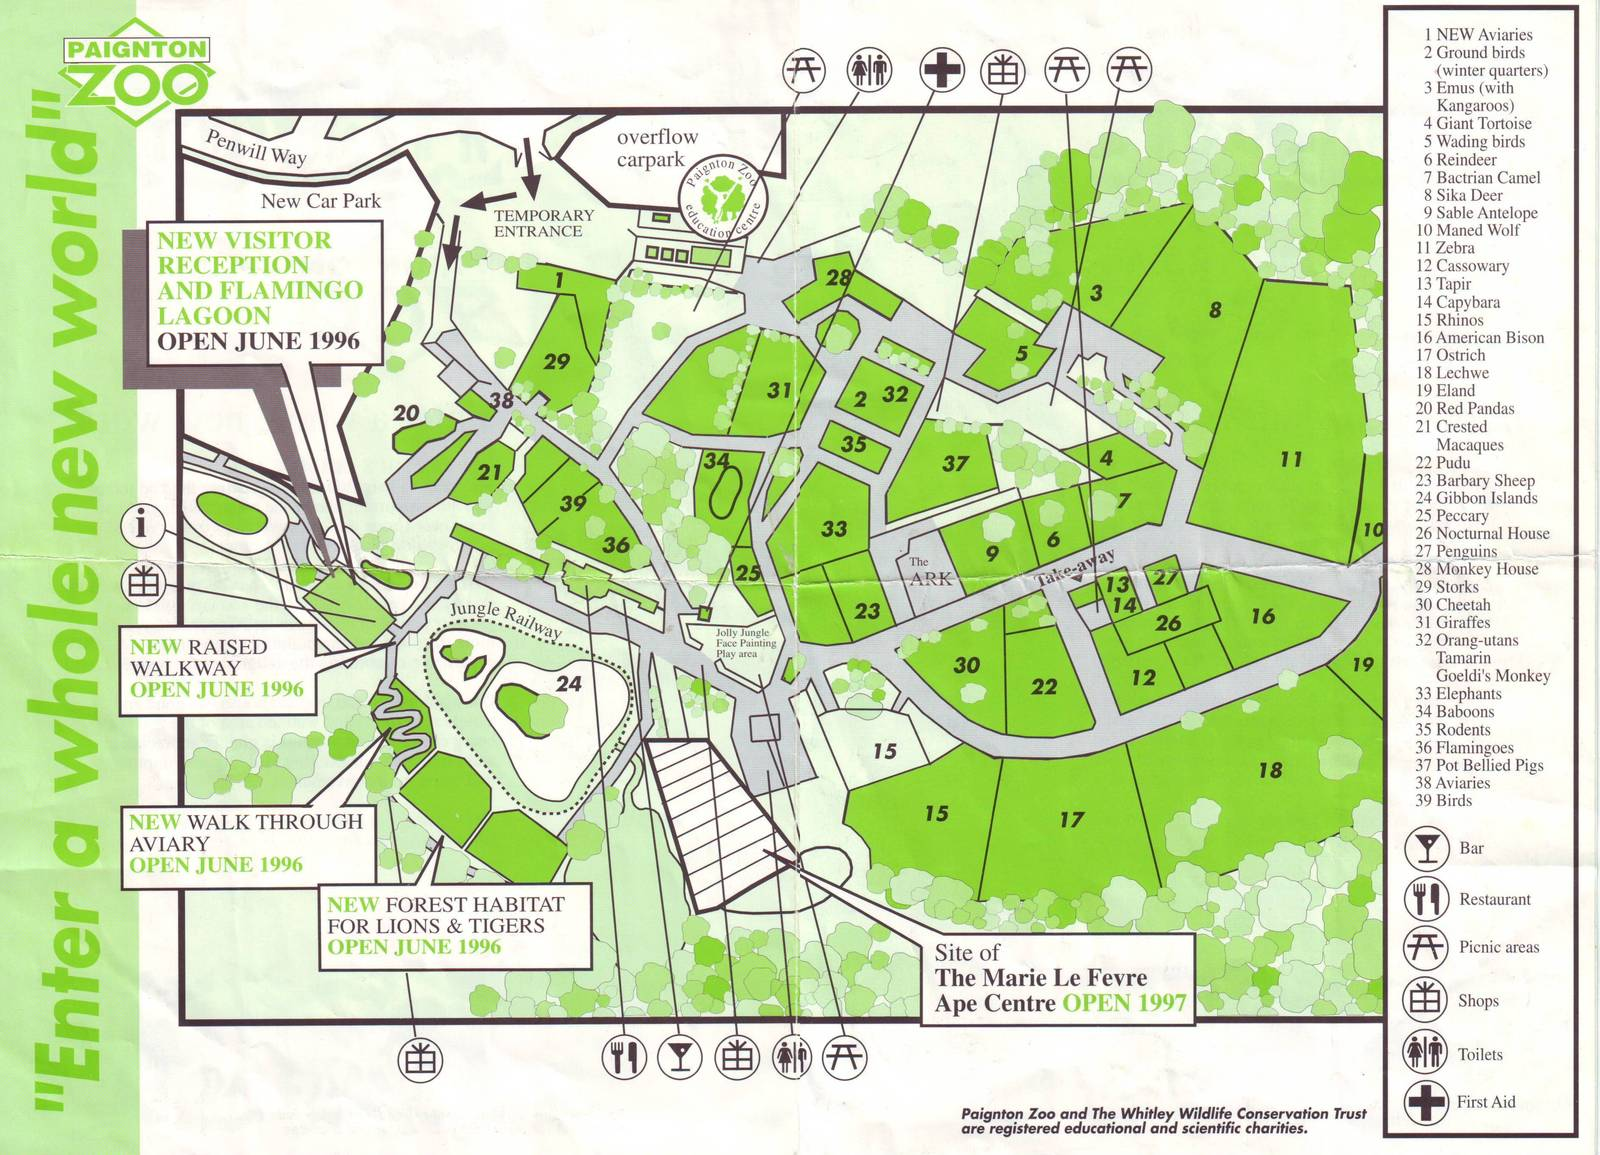 Paignton Zoo Map Old Map 2 | ZooChat Paignton Zoo Map